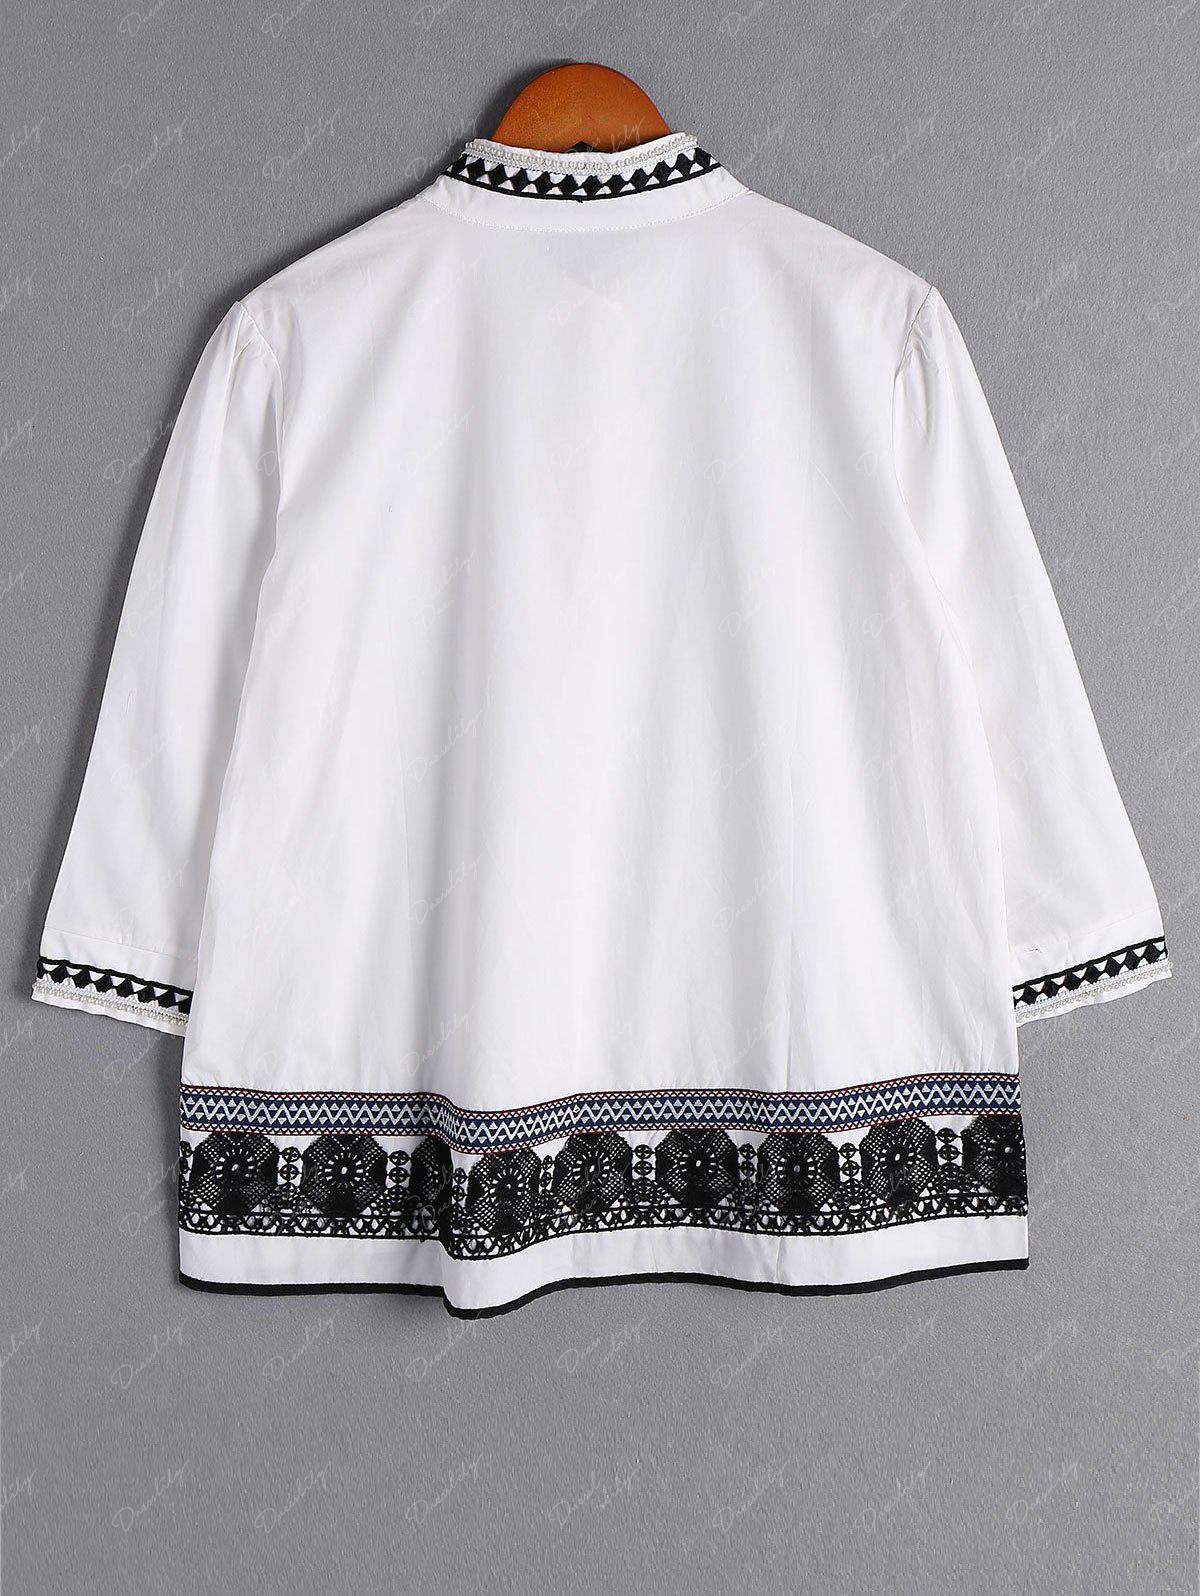 Sweet Lace Design Stand Collar 3/4 Sleeve Plus Size Blouse For Women - WHITE 2XL